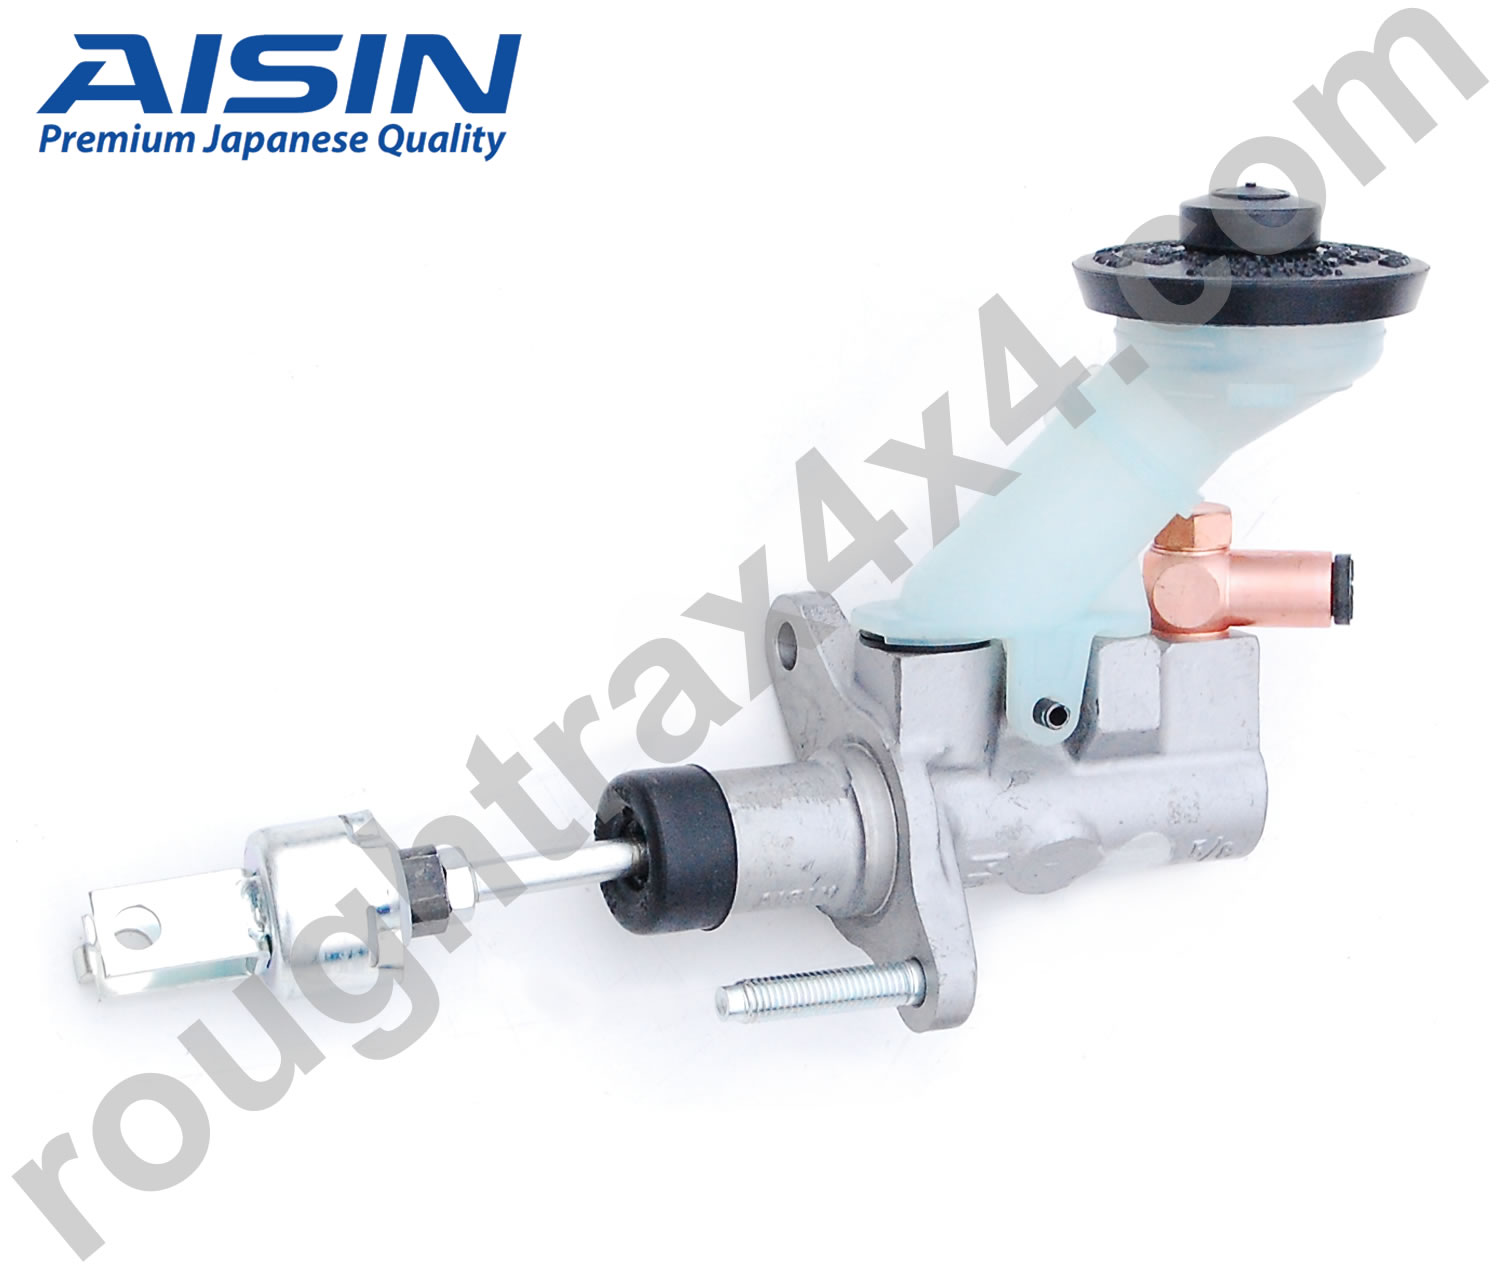 aisin clutch master cylinder 91 93 roughtrax 4x4. Black Bedroom Furniture Sets. Home Design Ideas